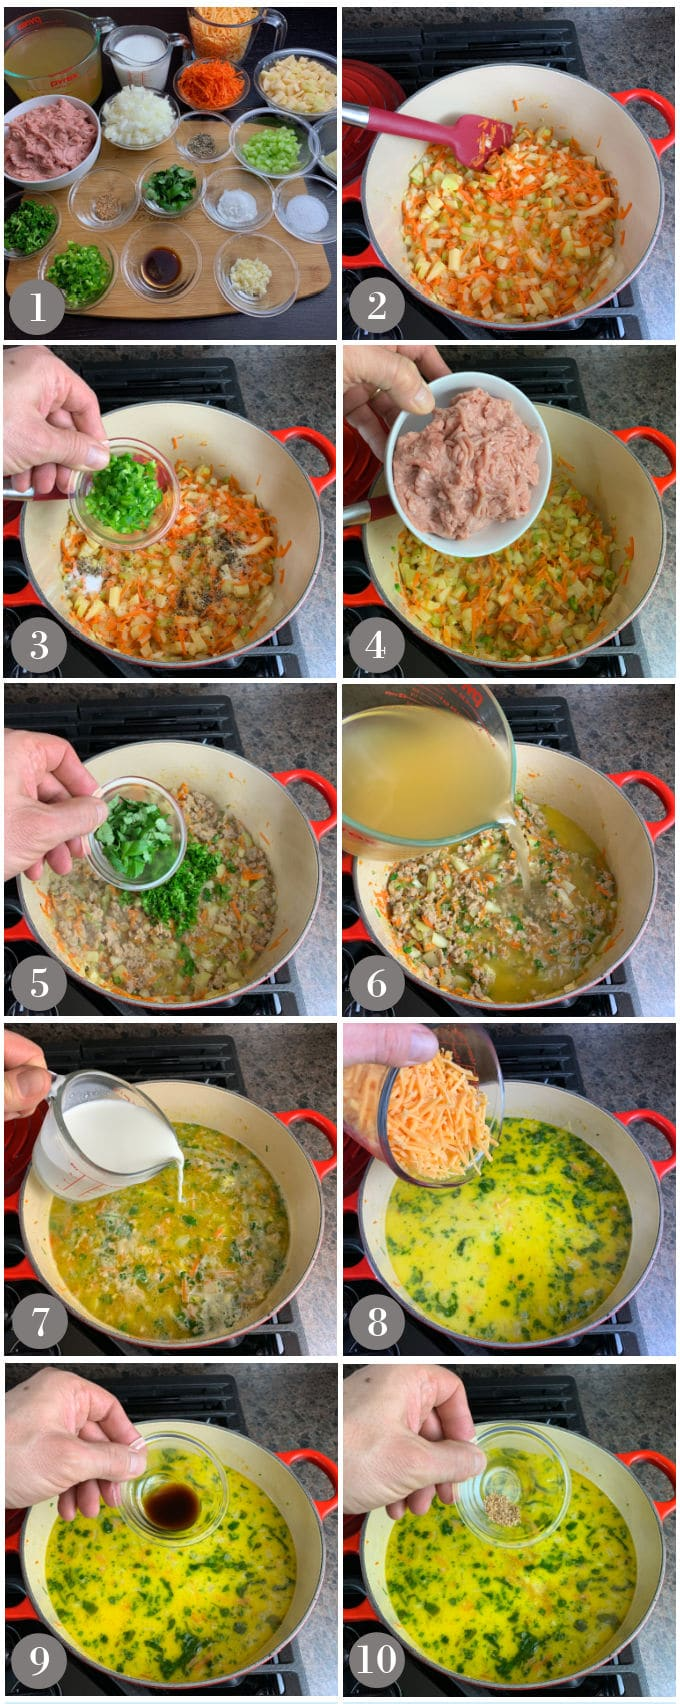 A collage of photos showing the ingredients and steps to make turkey burger soup in a soup pot in a stove.